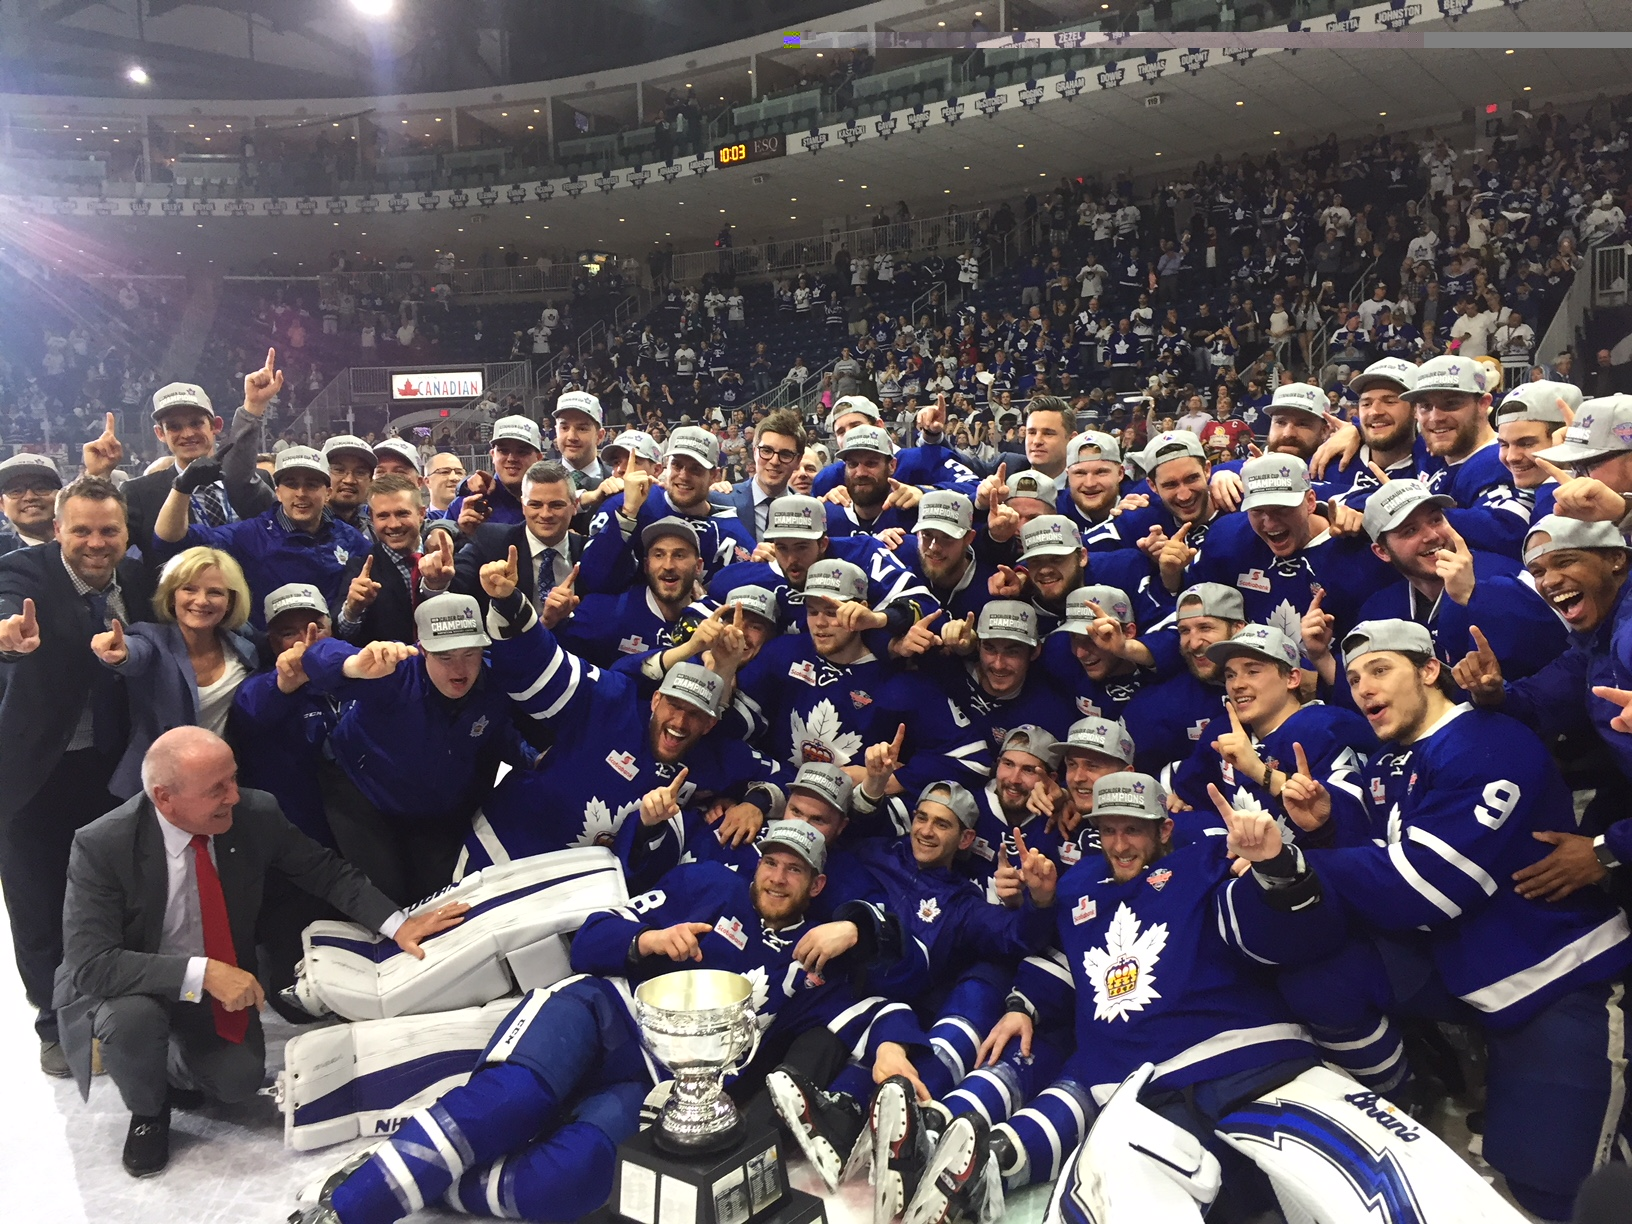 Calder Cup champions! Marlies clinch title